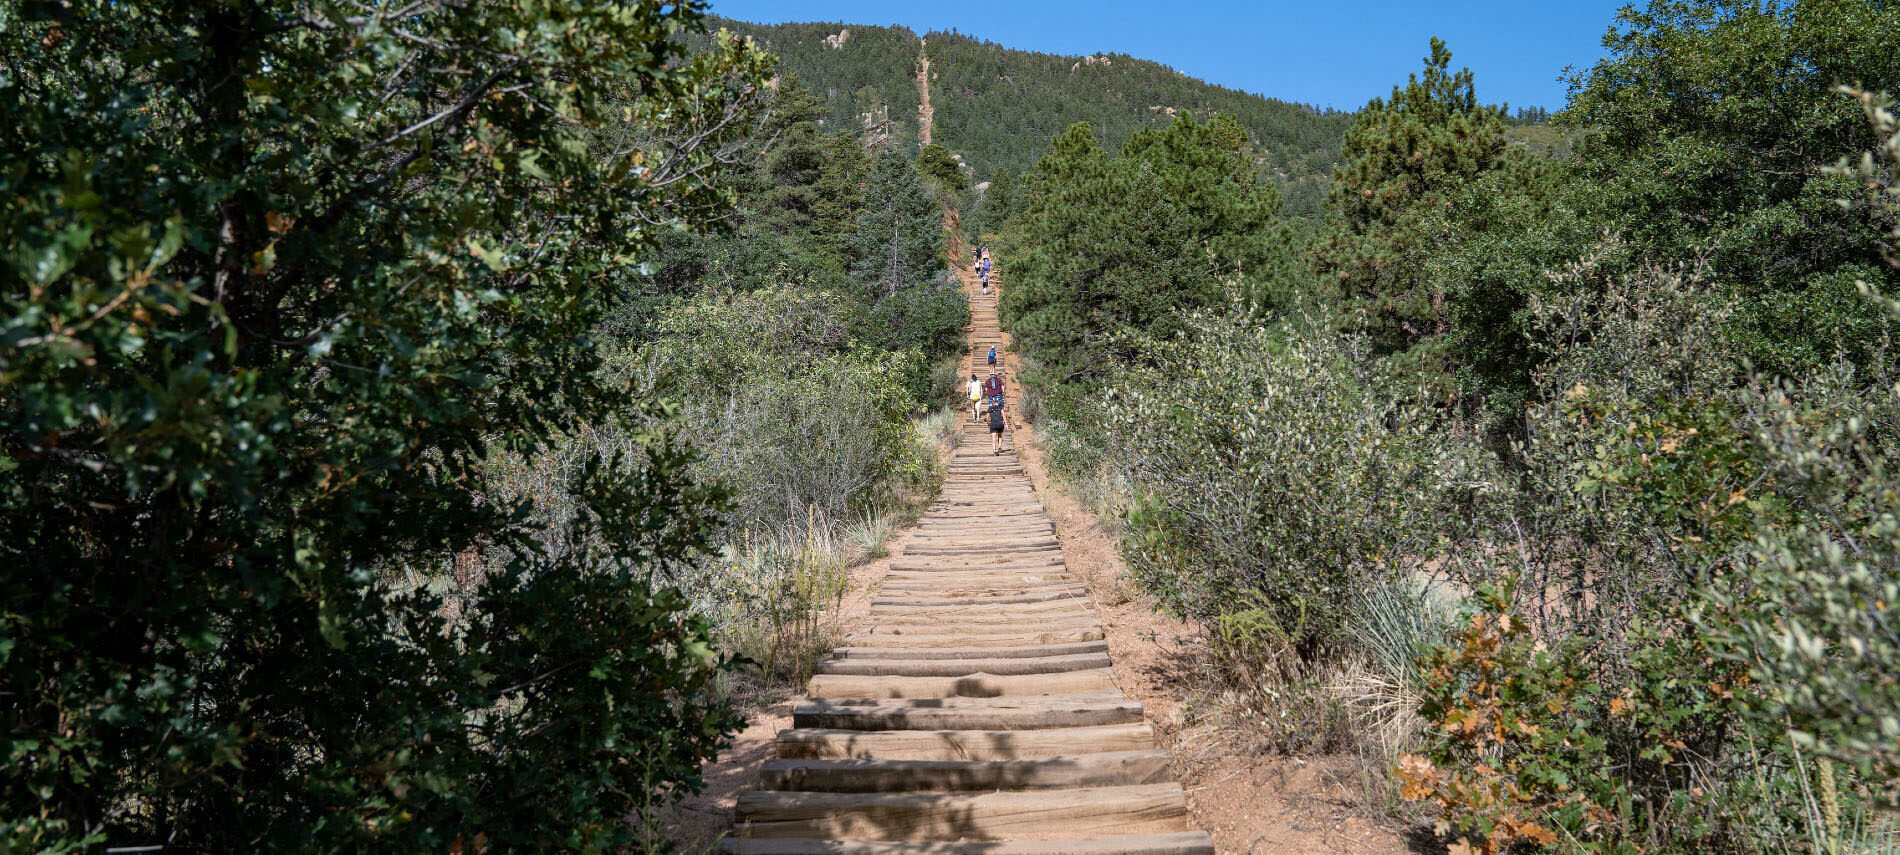 The Manitou Springs Incine